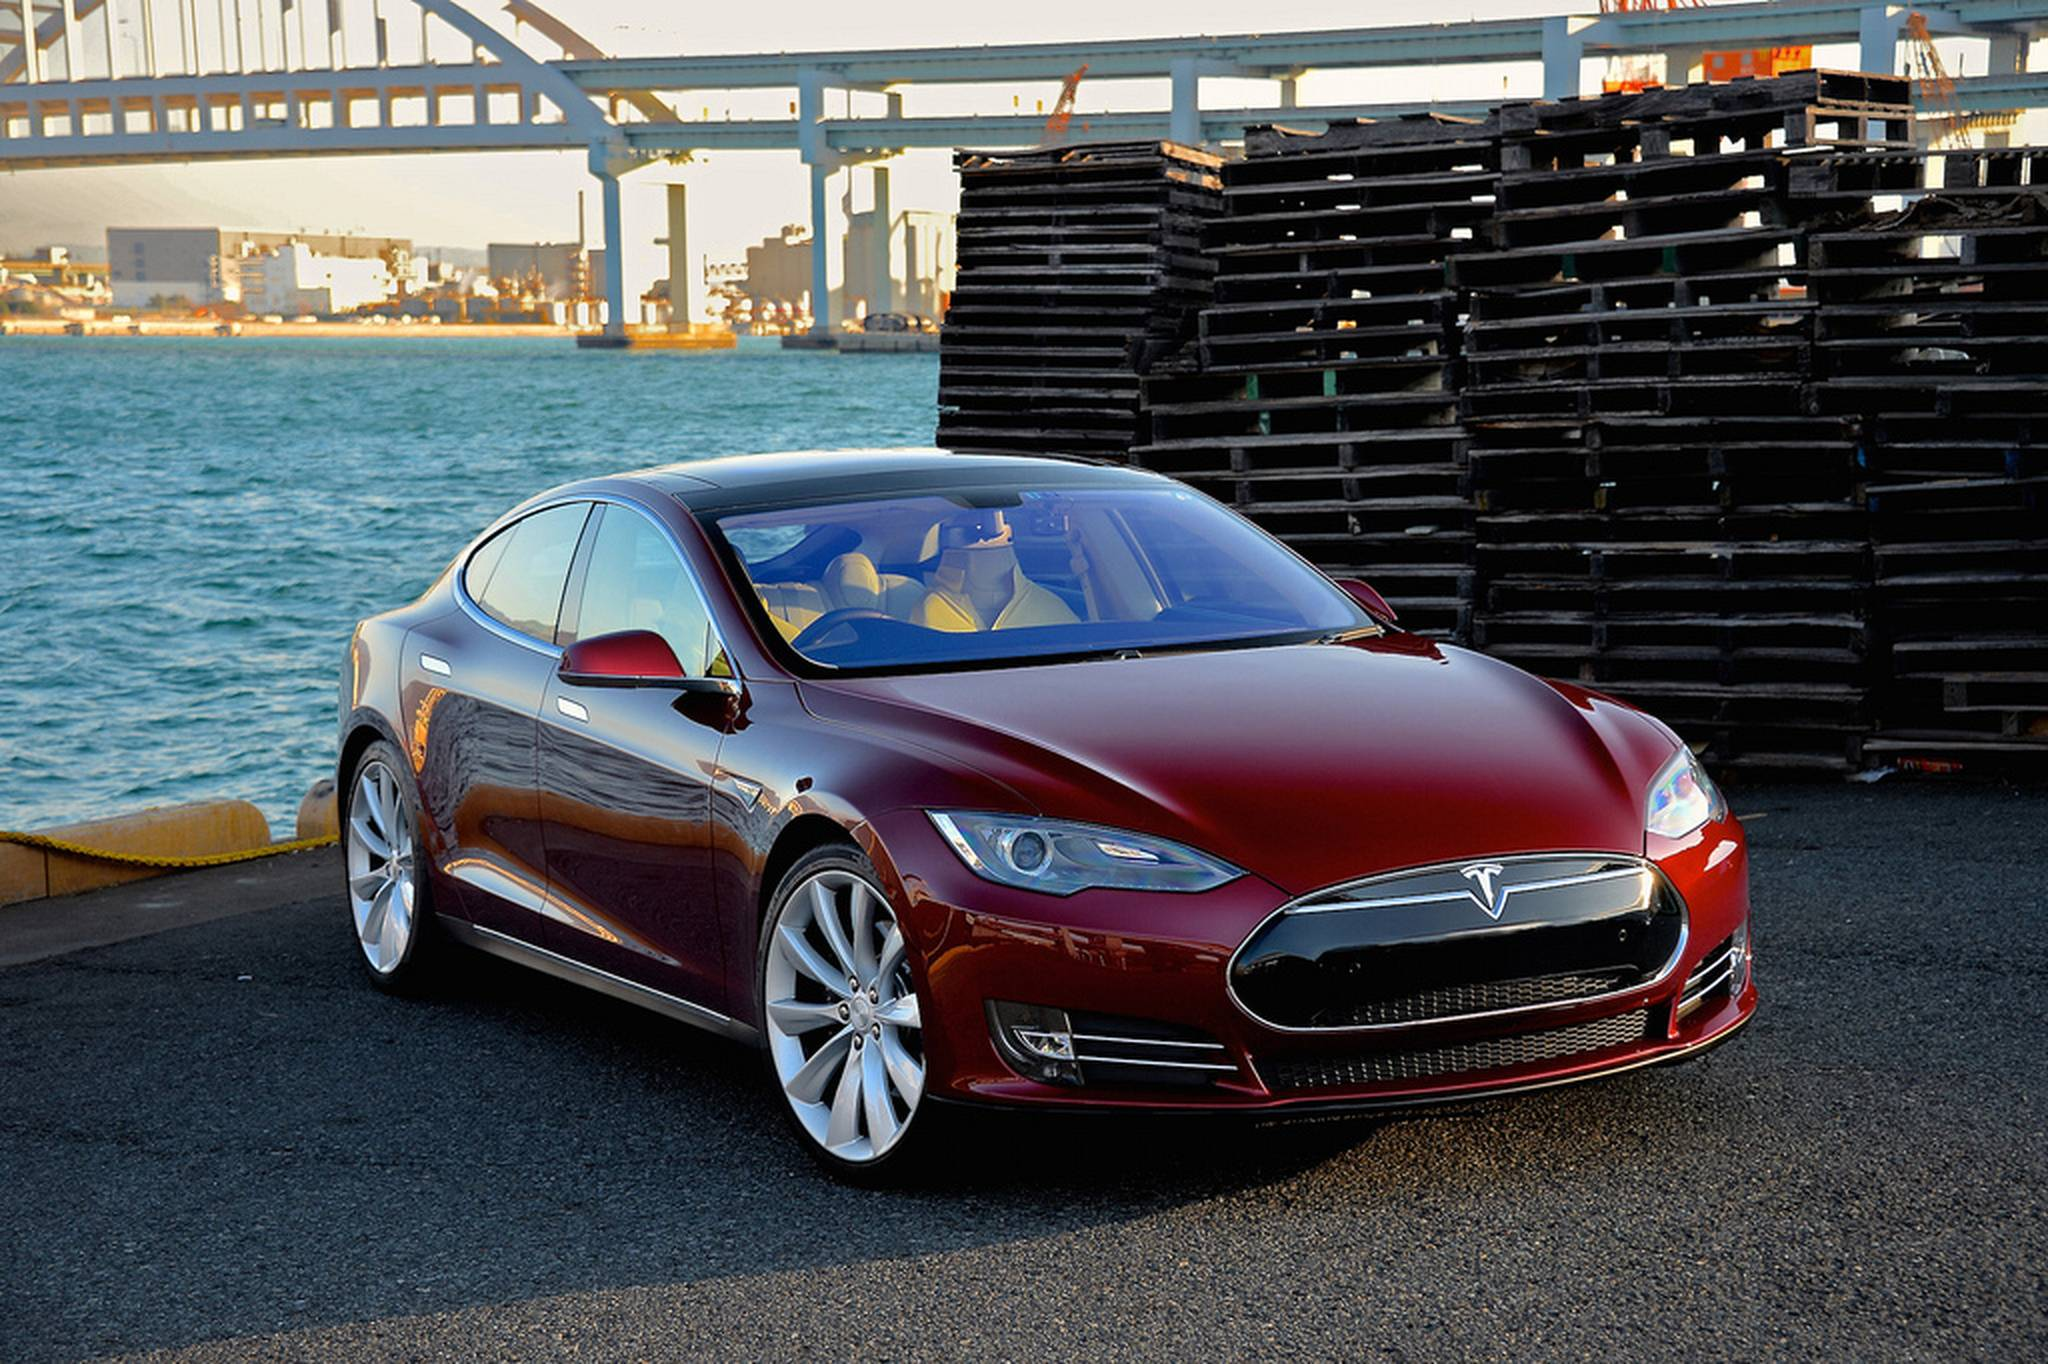 Elon Musk Says The Tesla Model S Can Be Used As A Boat